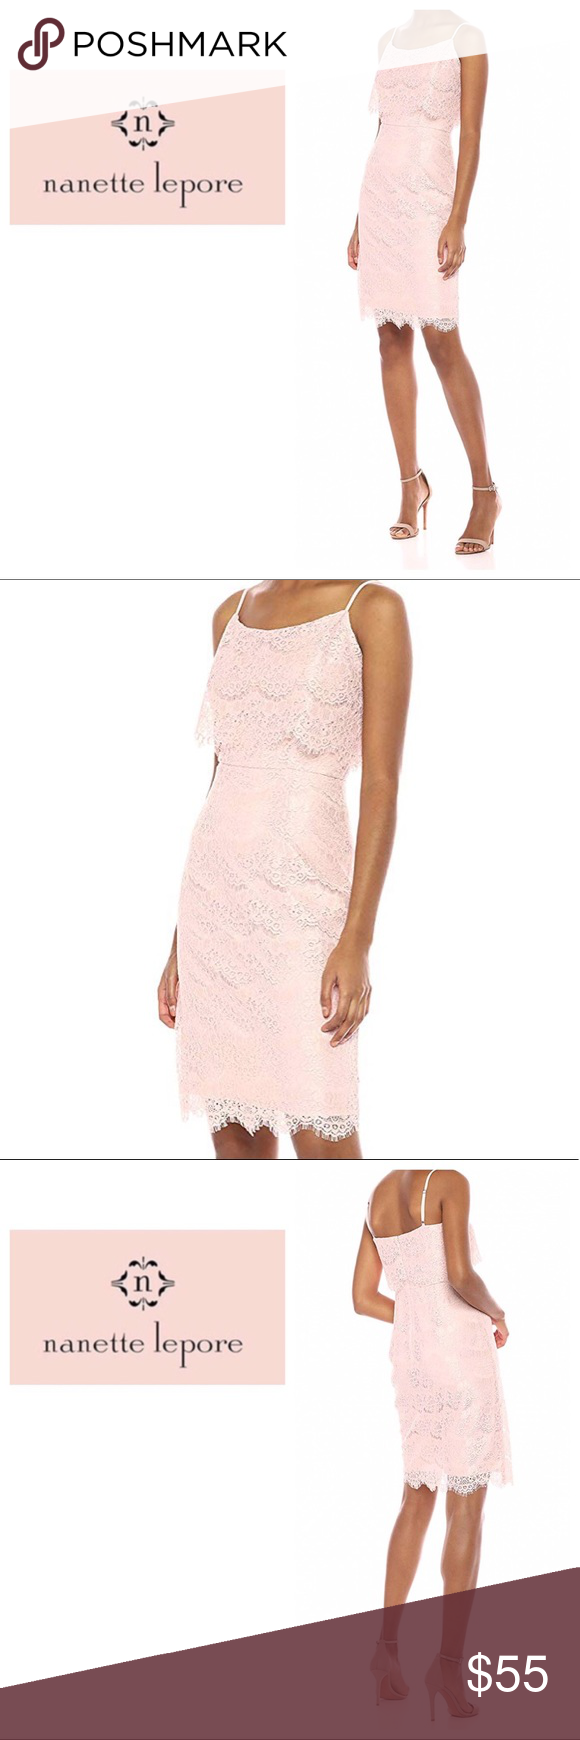 Nanette Lepore Barely Blush Lace Dress Nwt With Images Blush Lace Dress Lace Peplum Dress Lace Dress Casual